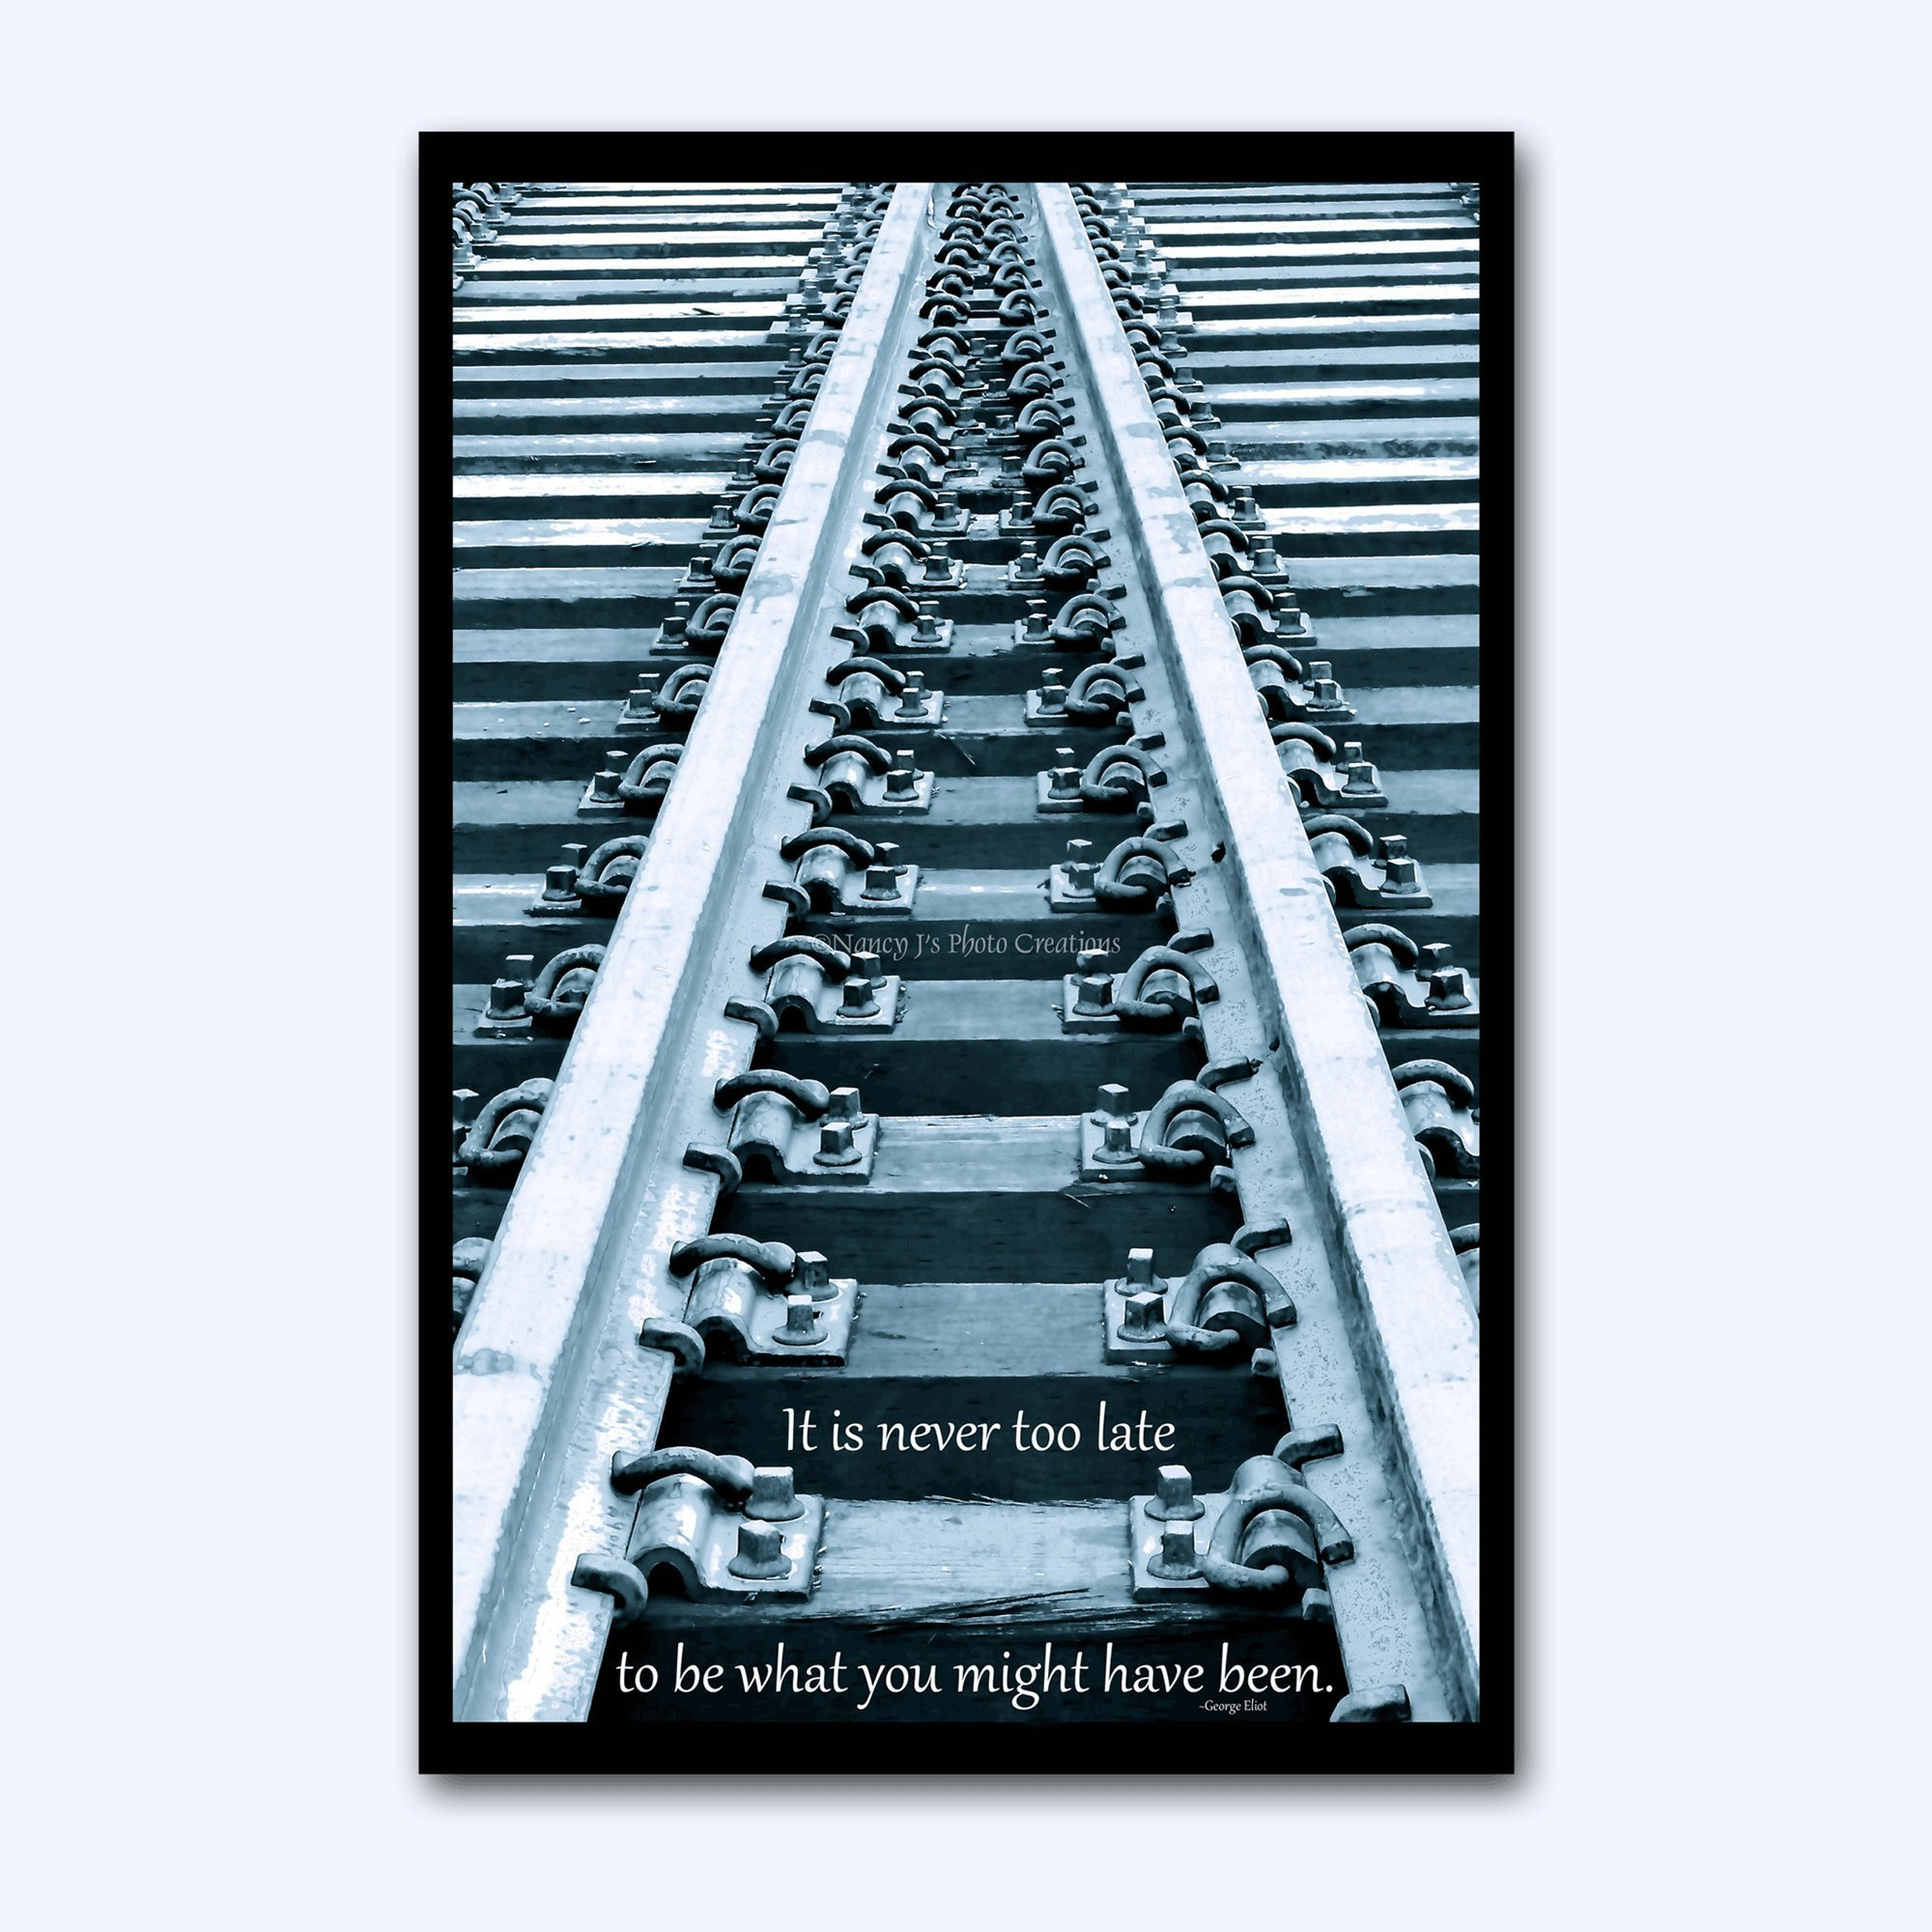 Inspirational Wall Art High Gloss PHOTO on ALUMINUM Motivational Quote Office Decor Railroad Tracks Photography Gift for Him or Her Career Change 8 x 12'' IN STOCK Ready to Ship and Hang